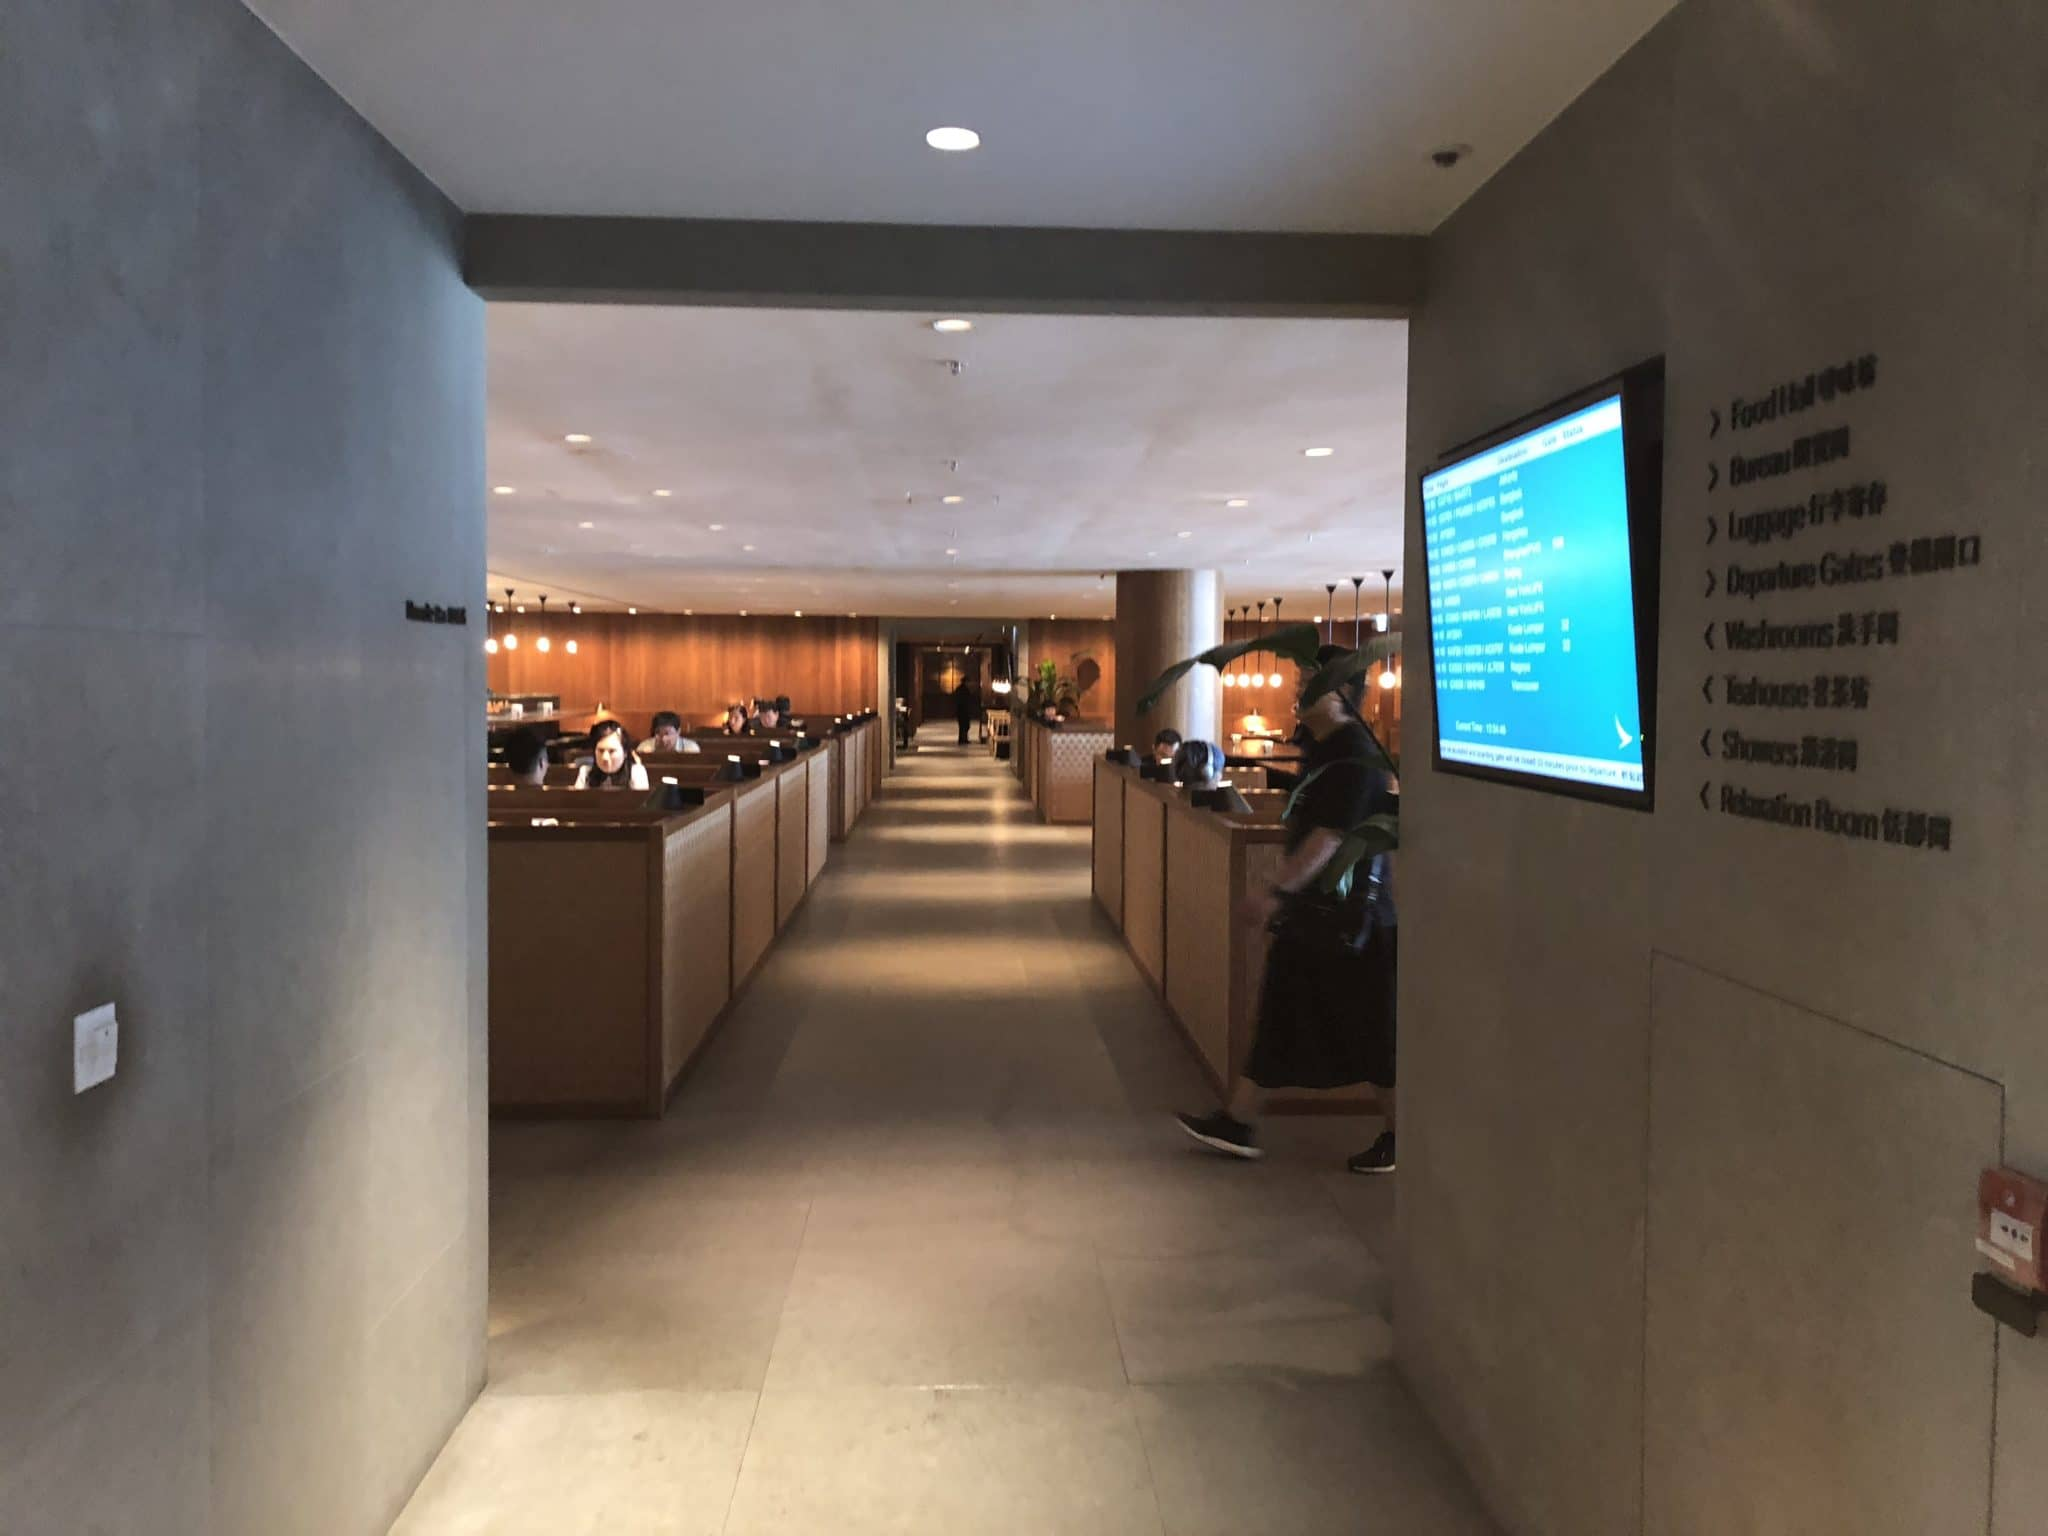 Cathay Pacific Business Class Lounge The Pier Blick Flur herunter